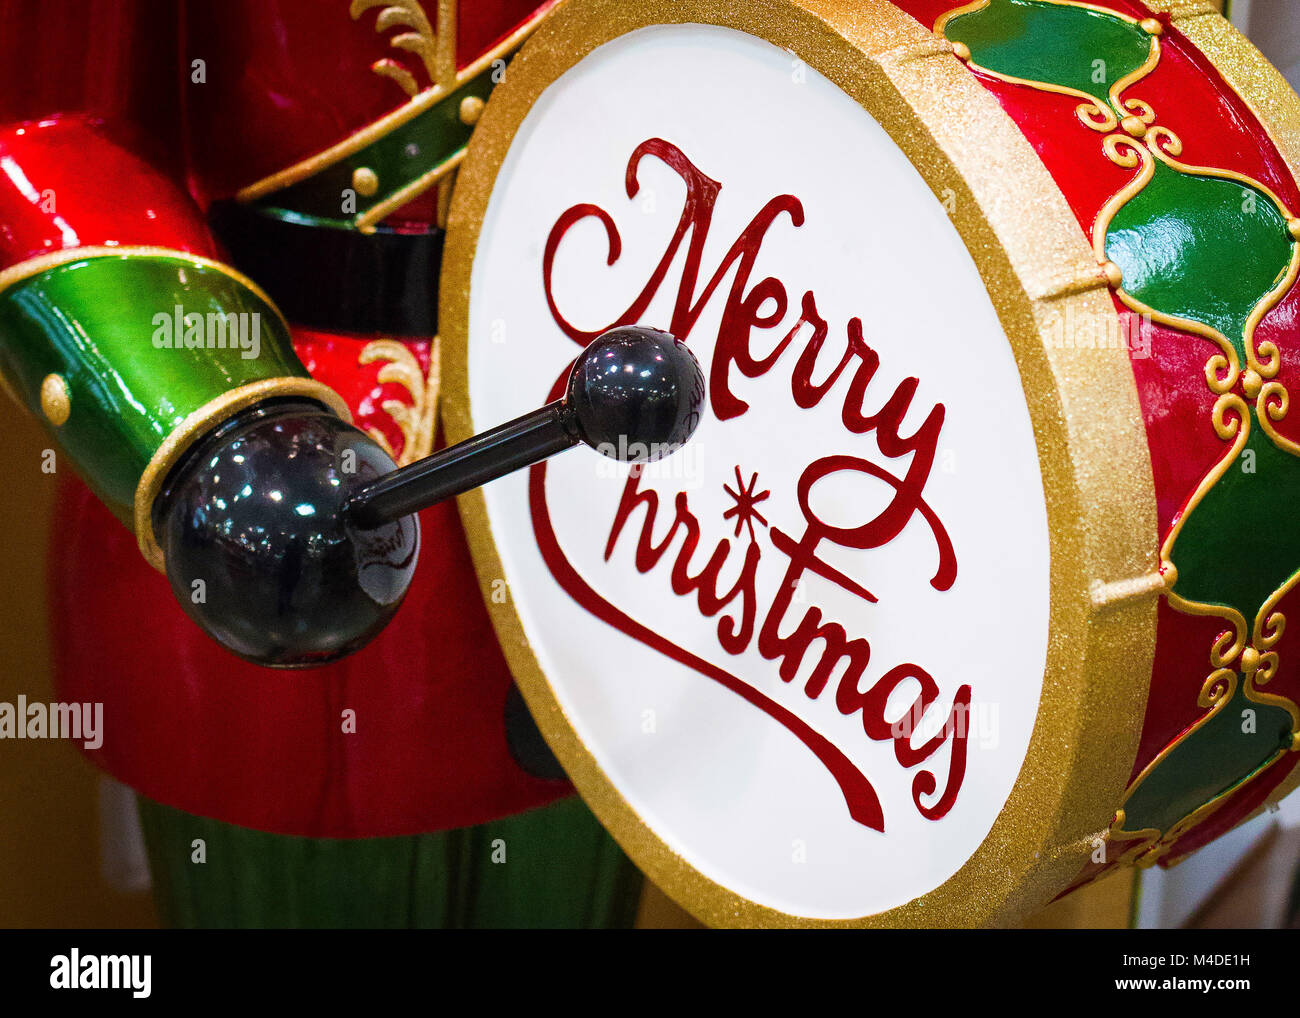 Christmas Drum.Christmas Drum With Words Closeup Colored Red And Green